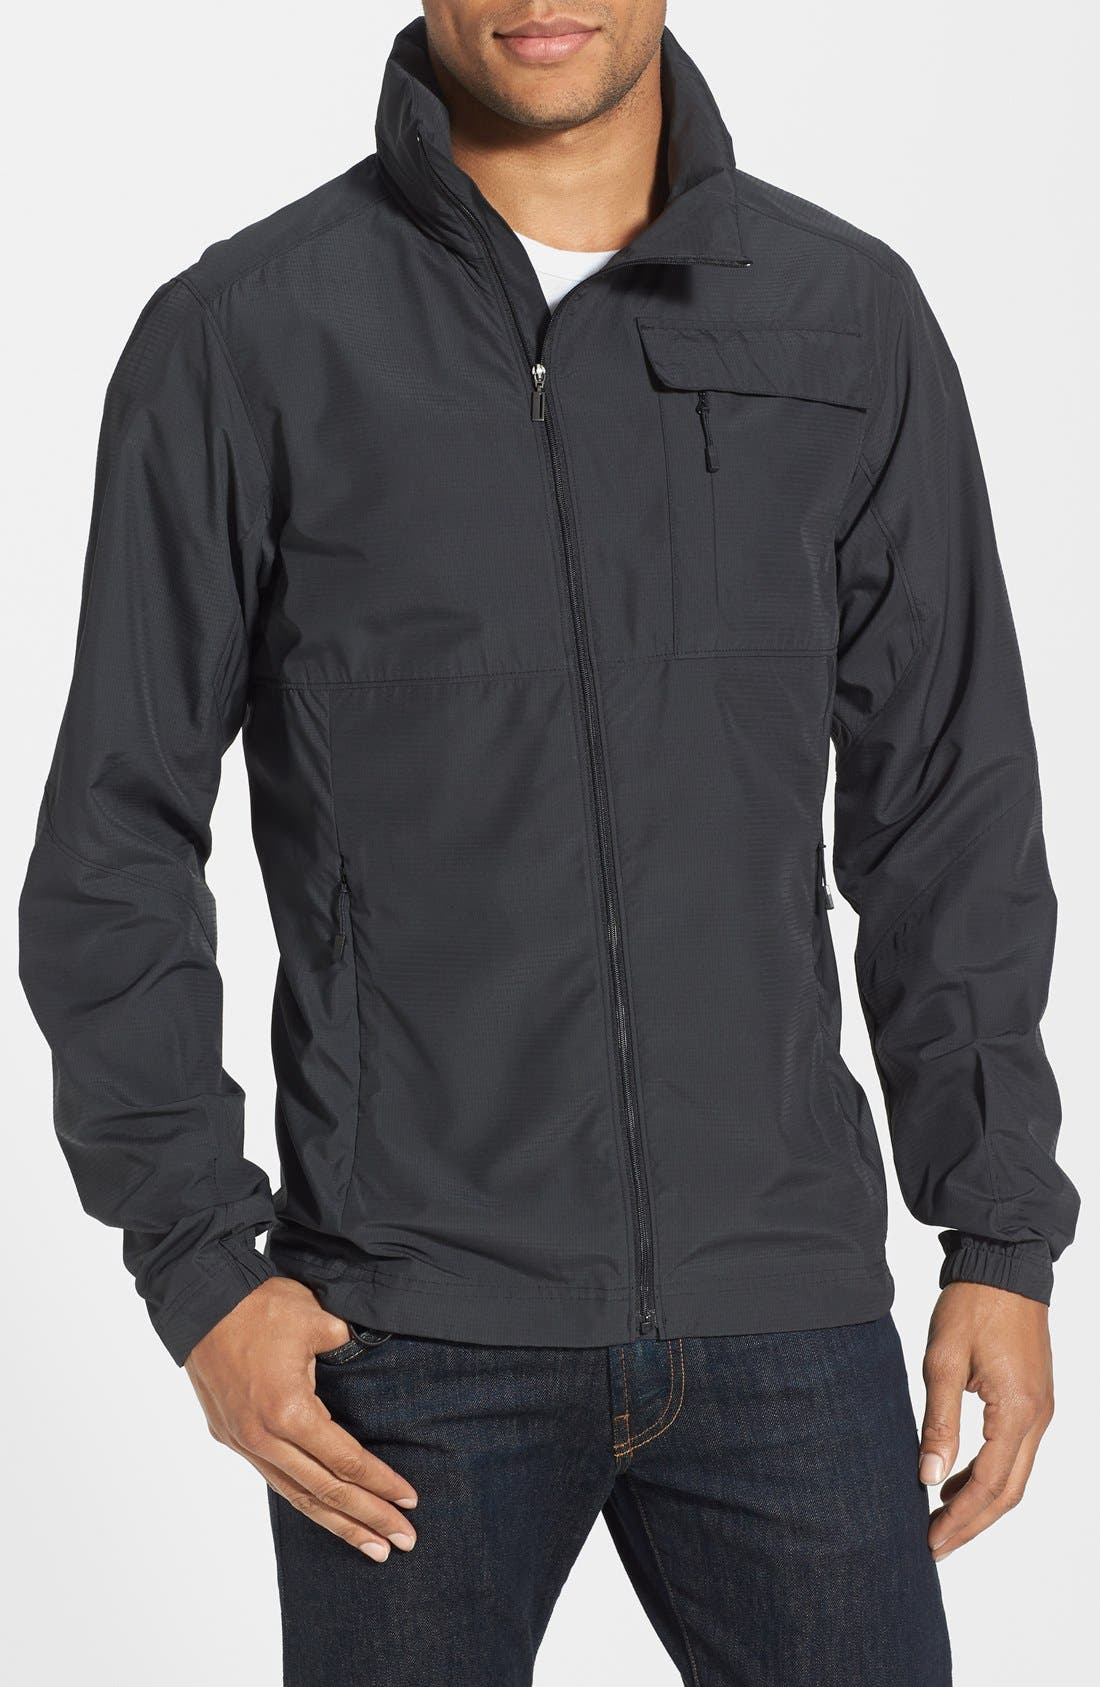 Main Image - Nau 'Lightbeam' Water Resistant Full Zip Jacket